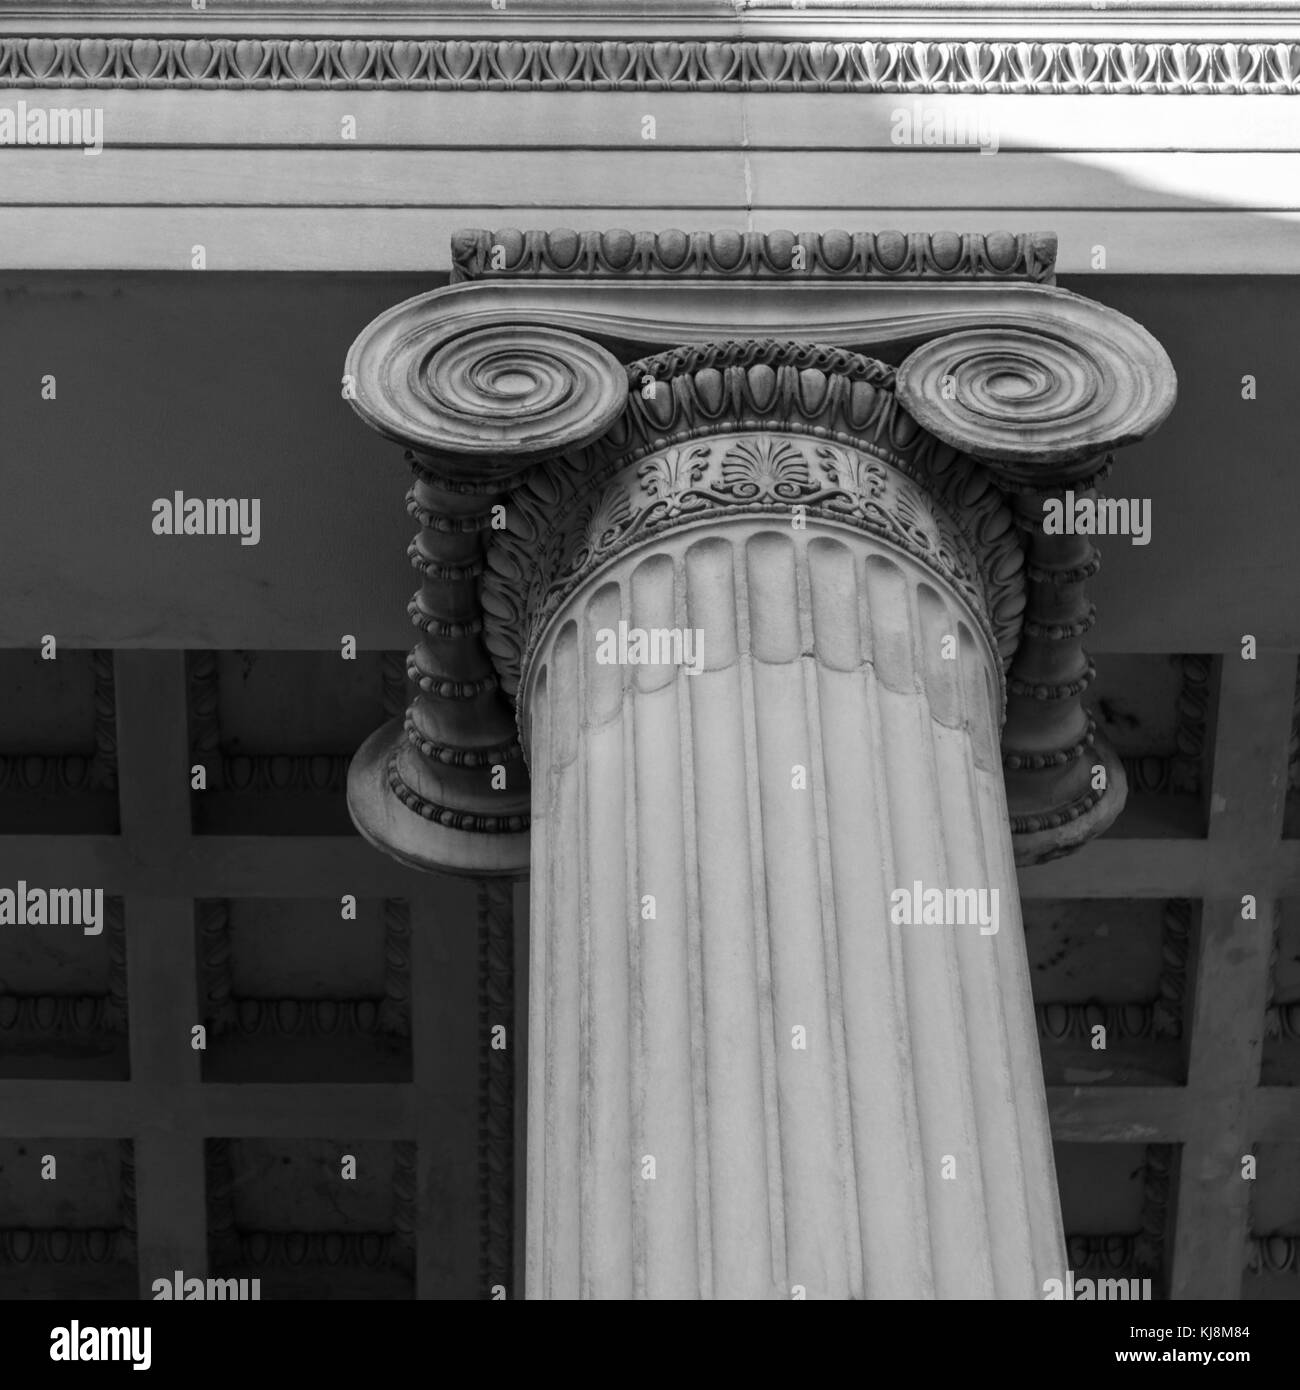 Close-up shot of a line of Greek-style columns - Stock Image